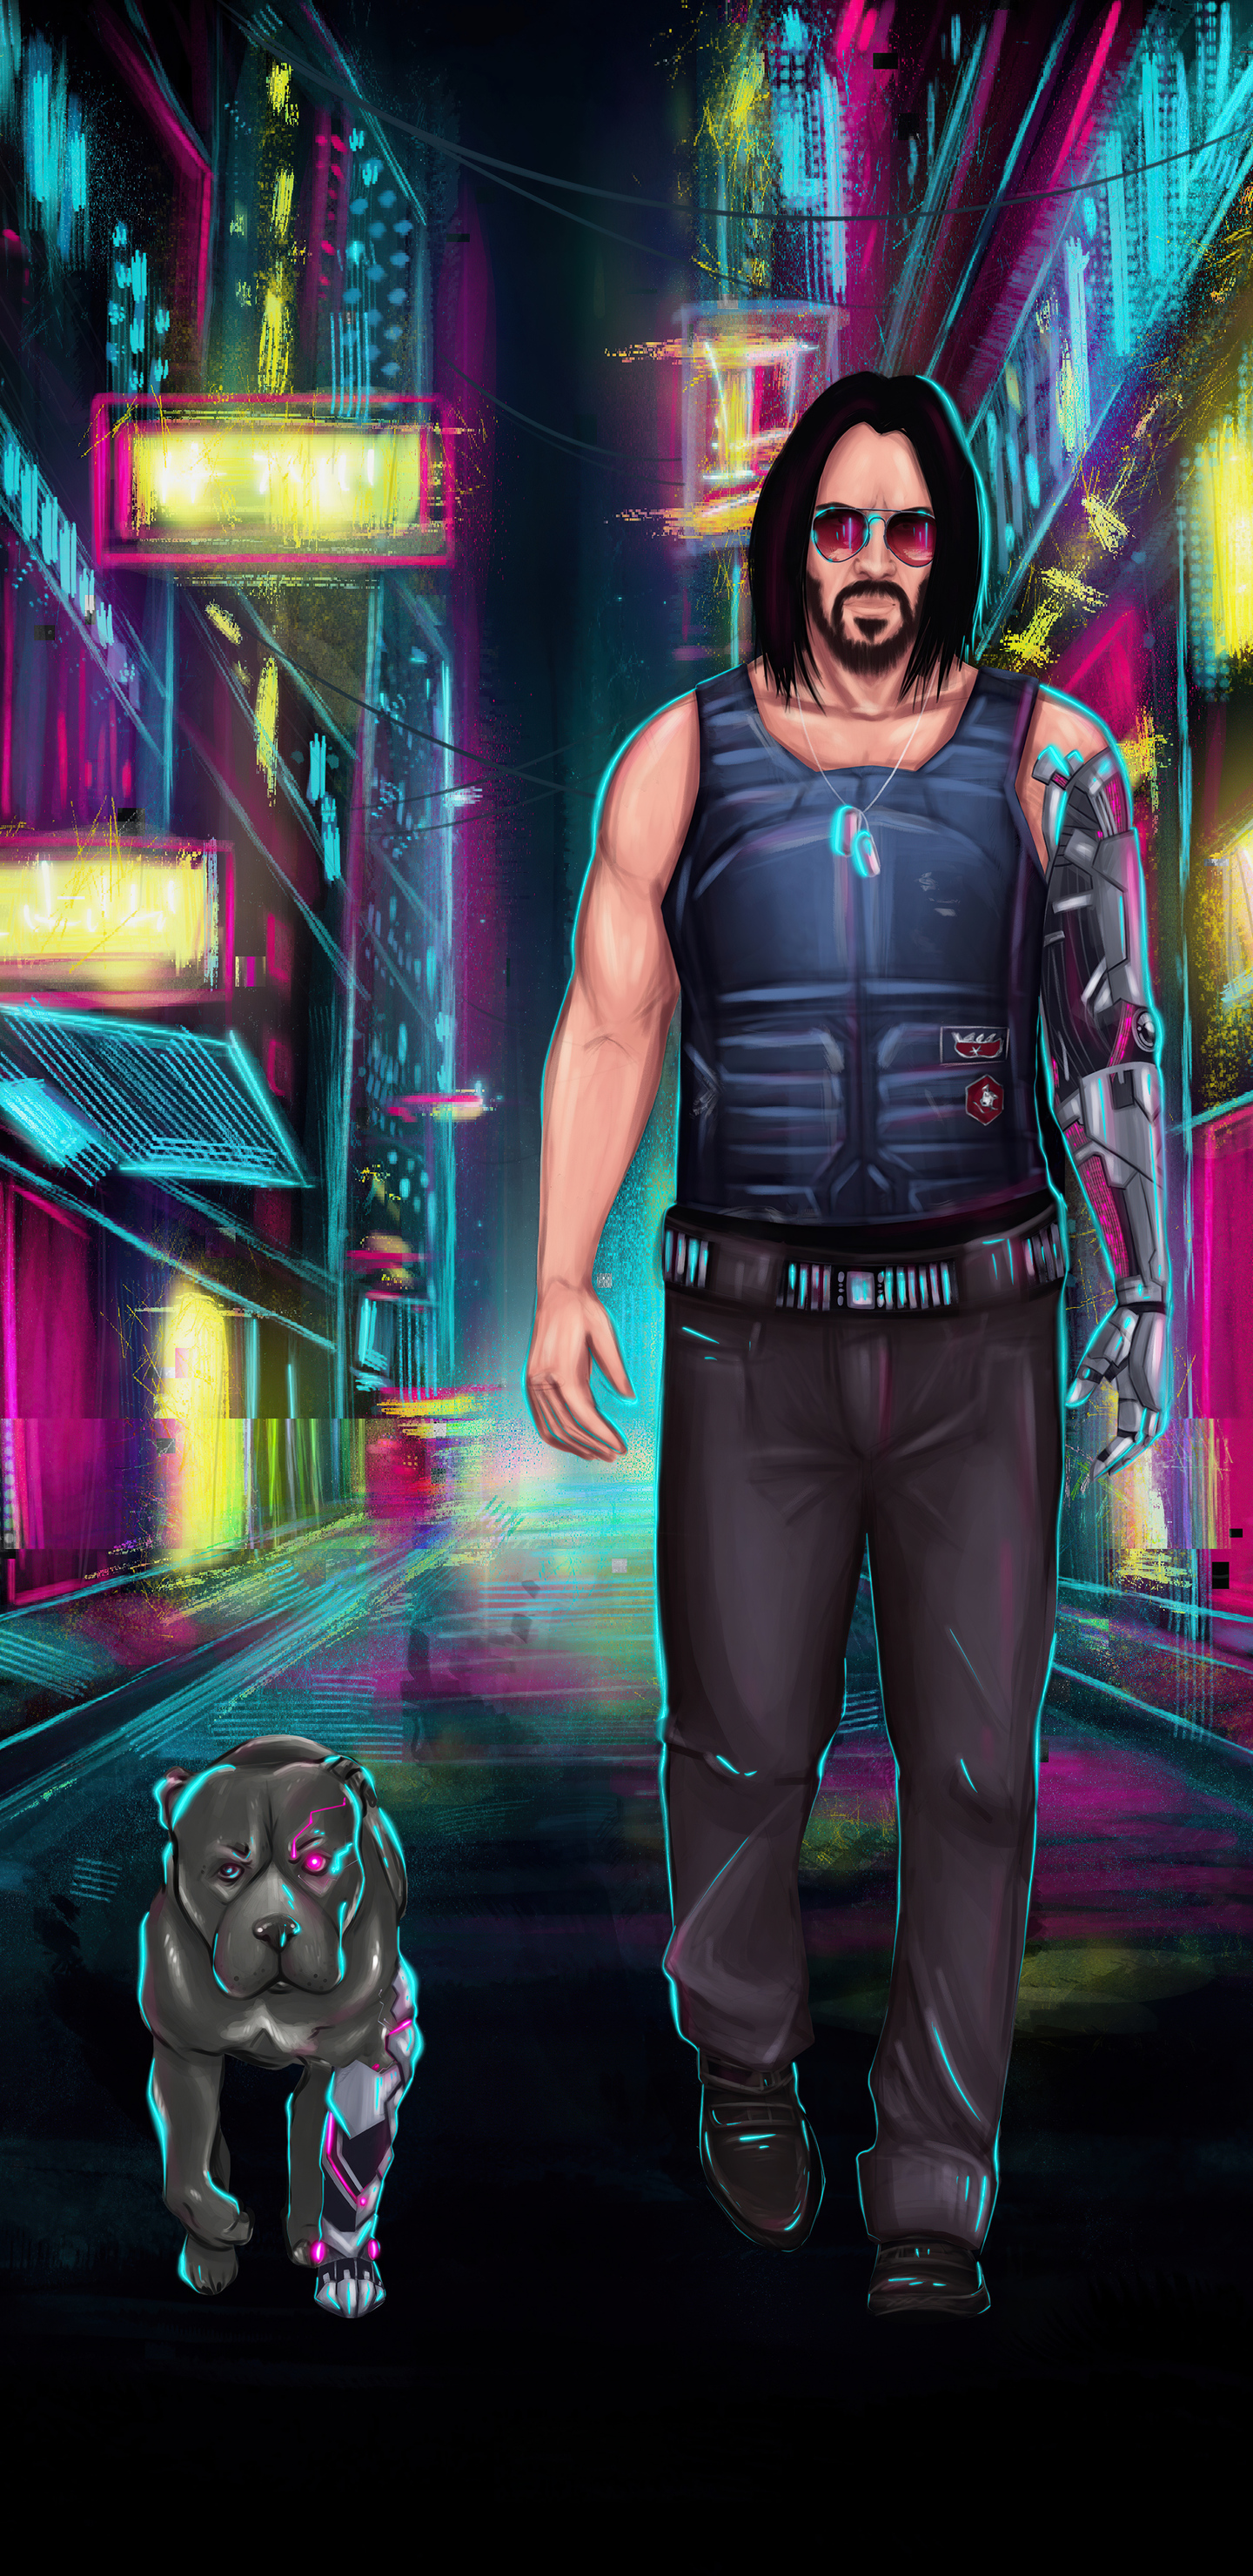 johnny-silverhand-with-his-cyber-dog-5k-l4.jpg